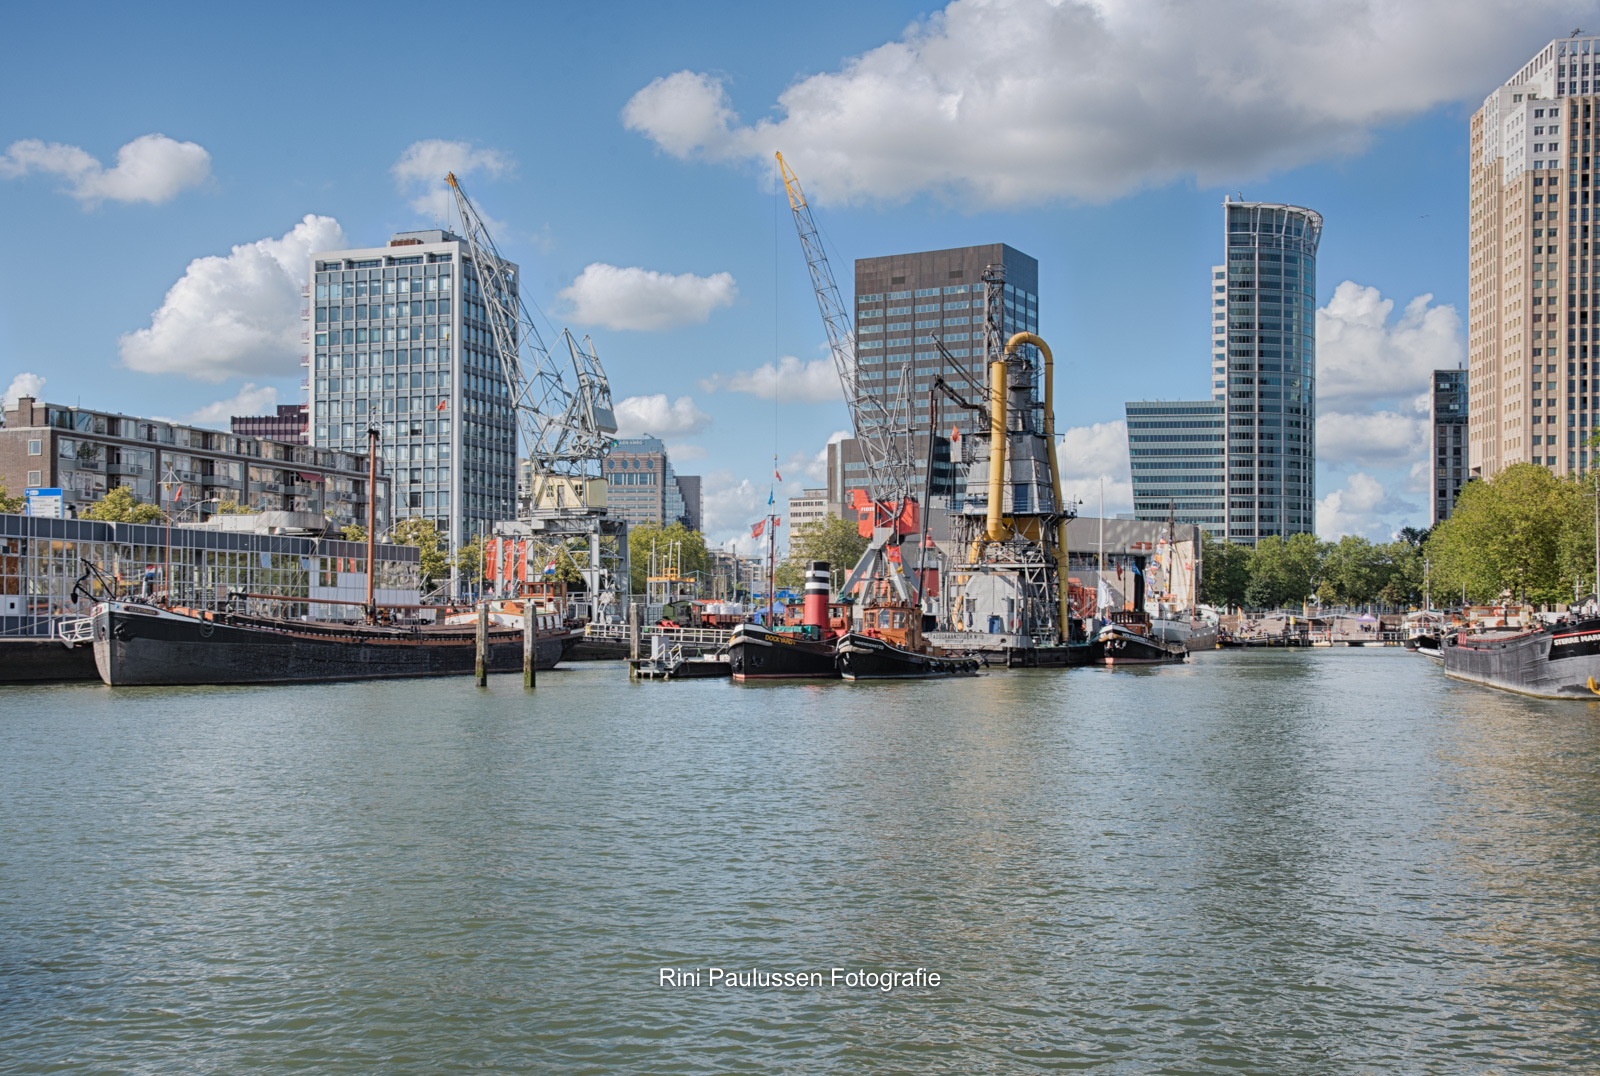 Rotterdam: Oude Haven